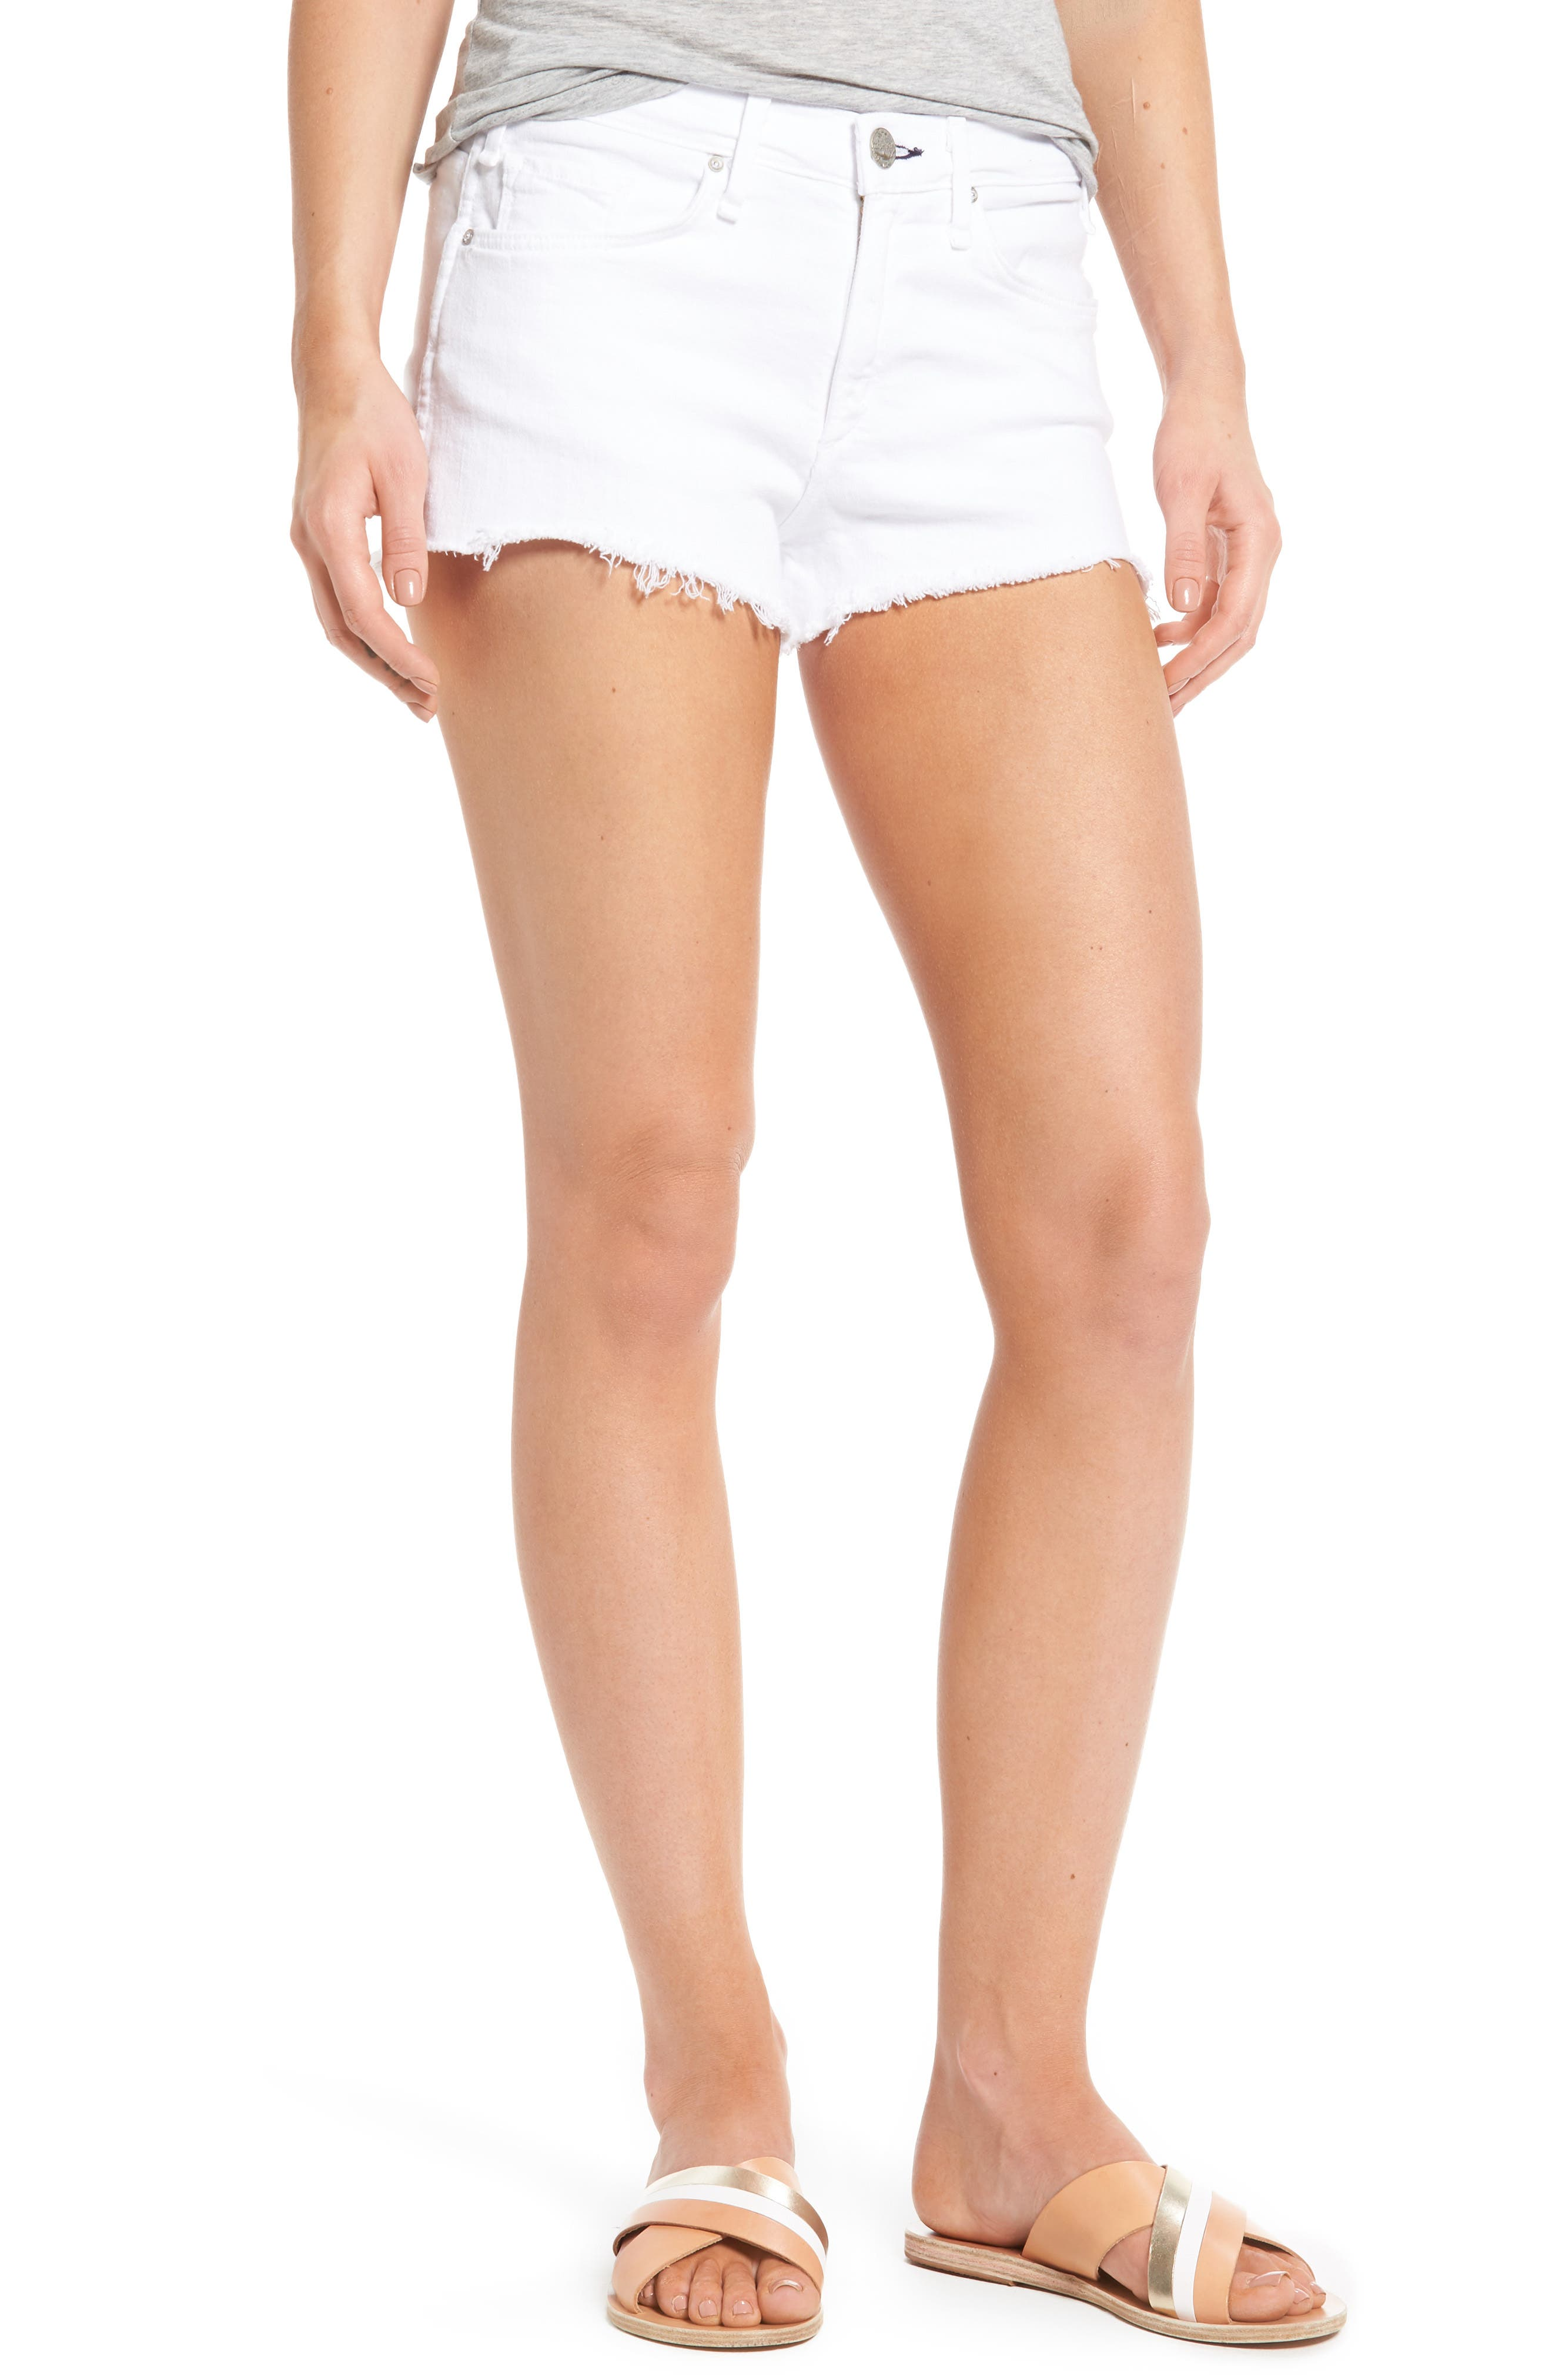 Alternate Image 1 Selected - McGuire Pom Pom Cutoff Denim Shorts (Amaro)